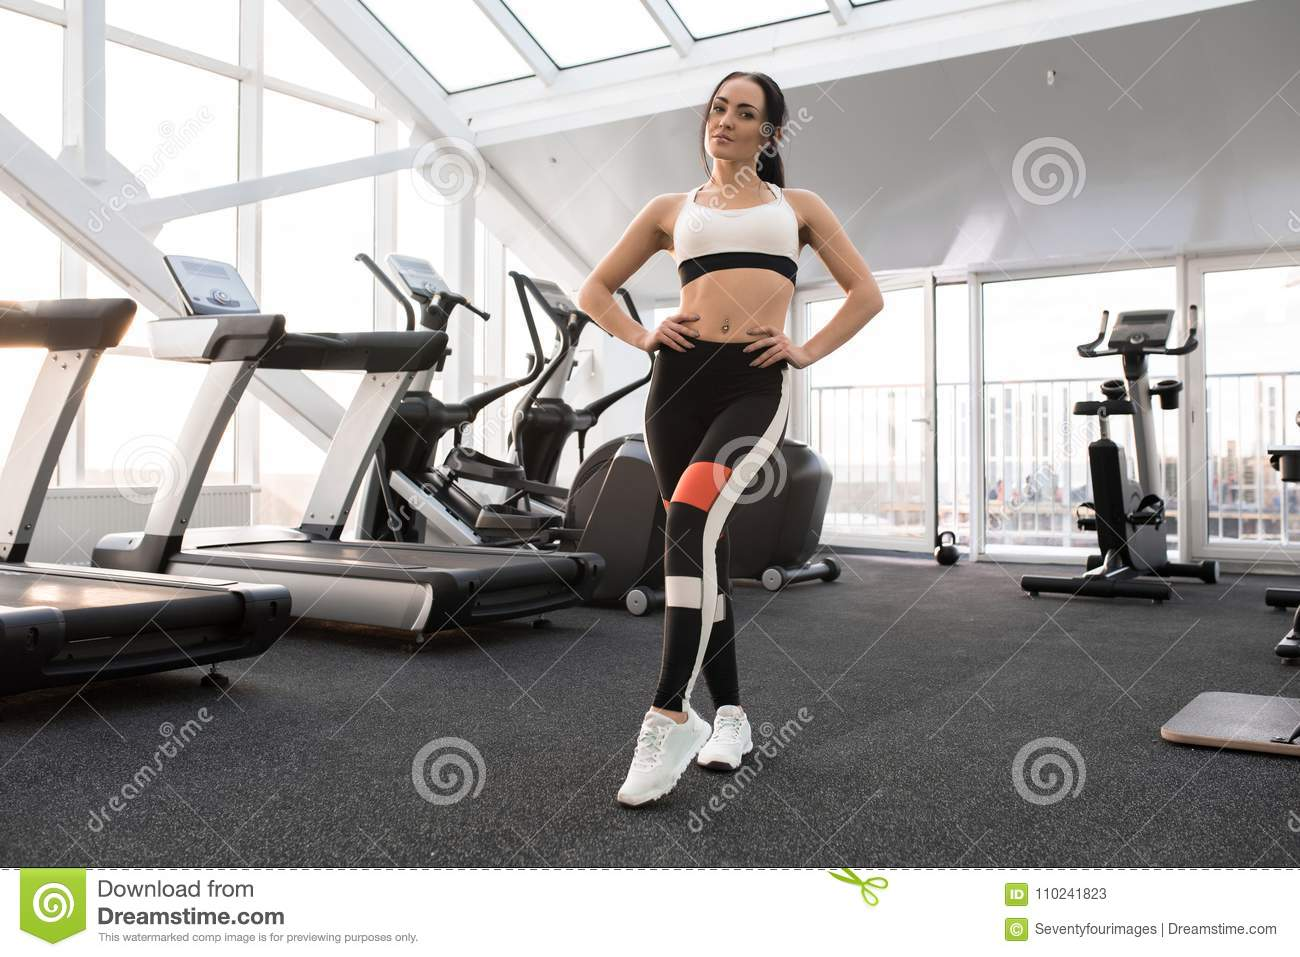 Fit Young Woman Posing in Gym